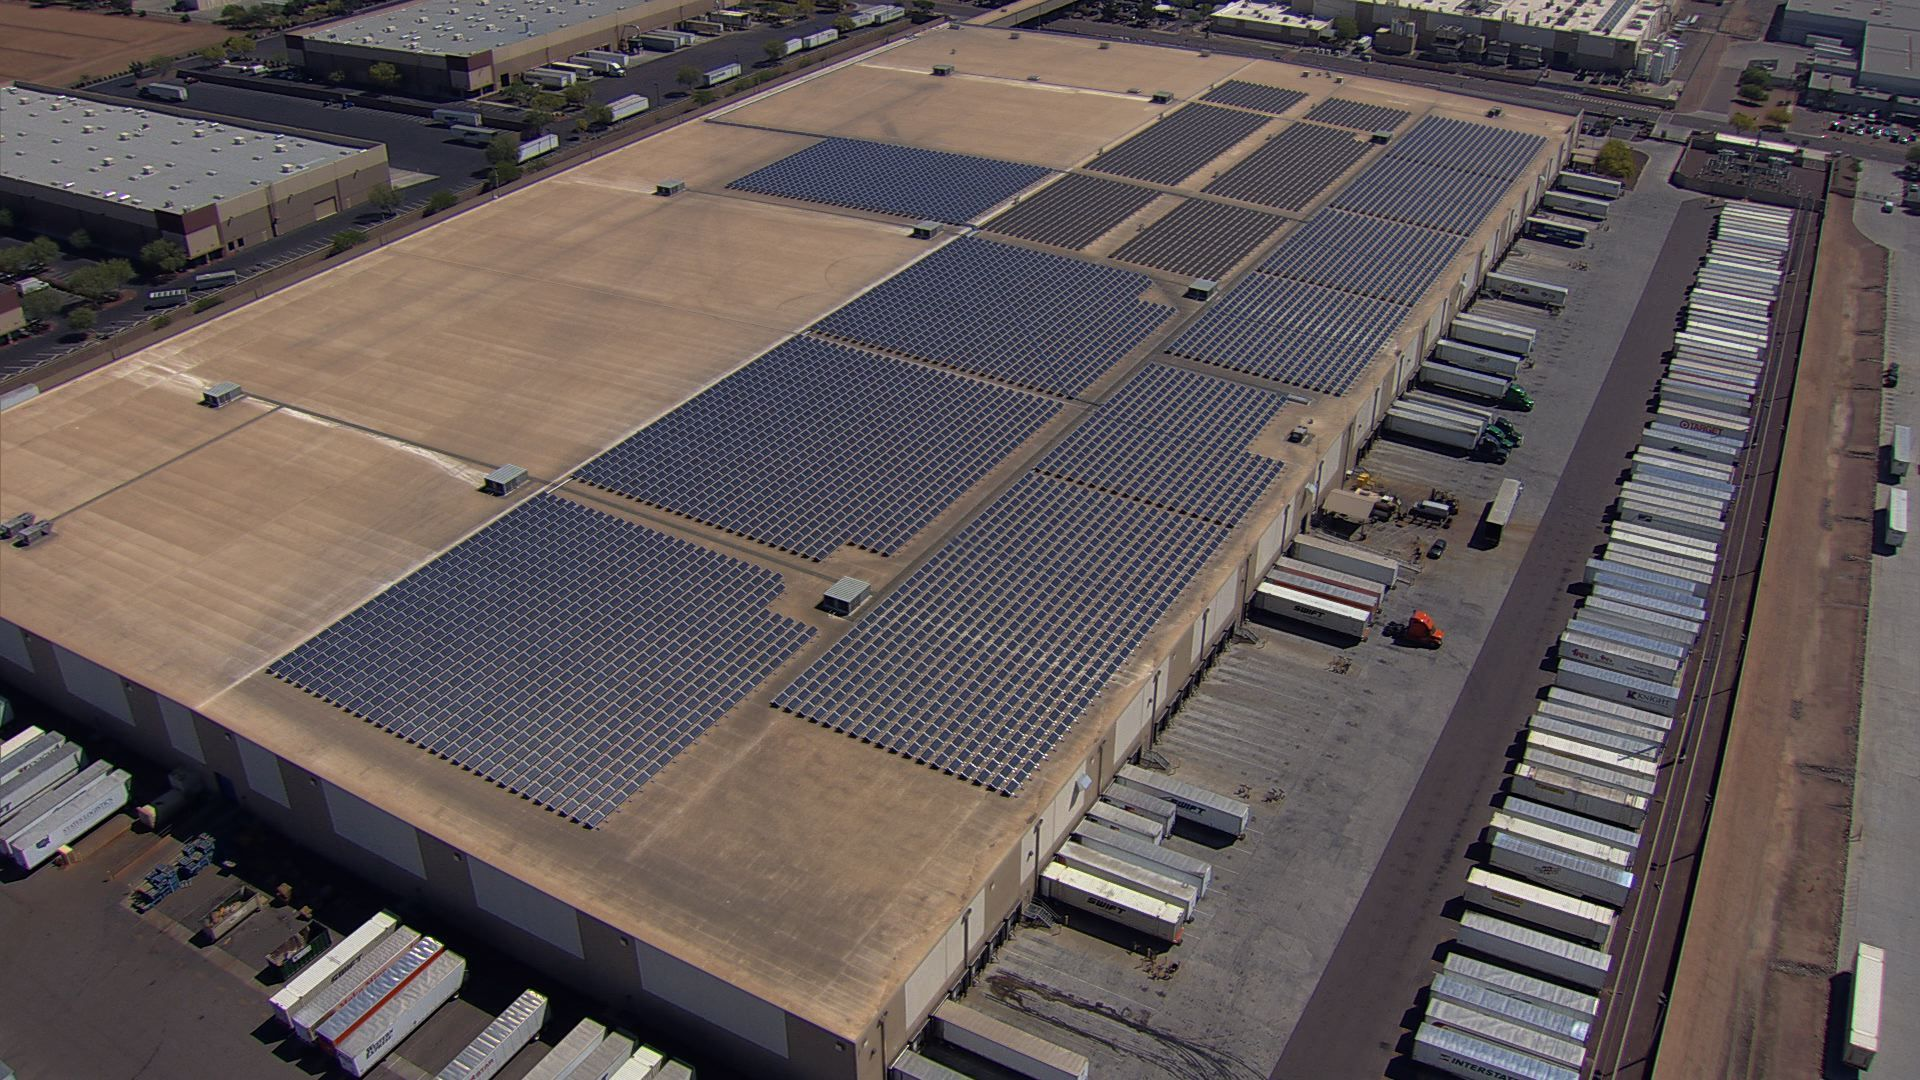 Using The Sun To Power Pepsico Operations Photovoltaic Panels Solar Panels Solar